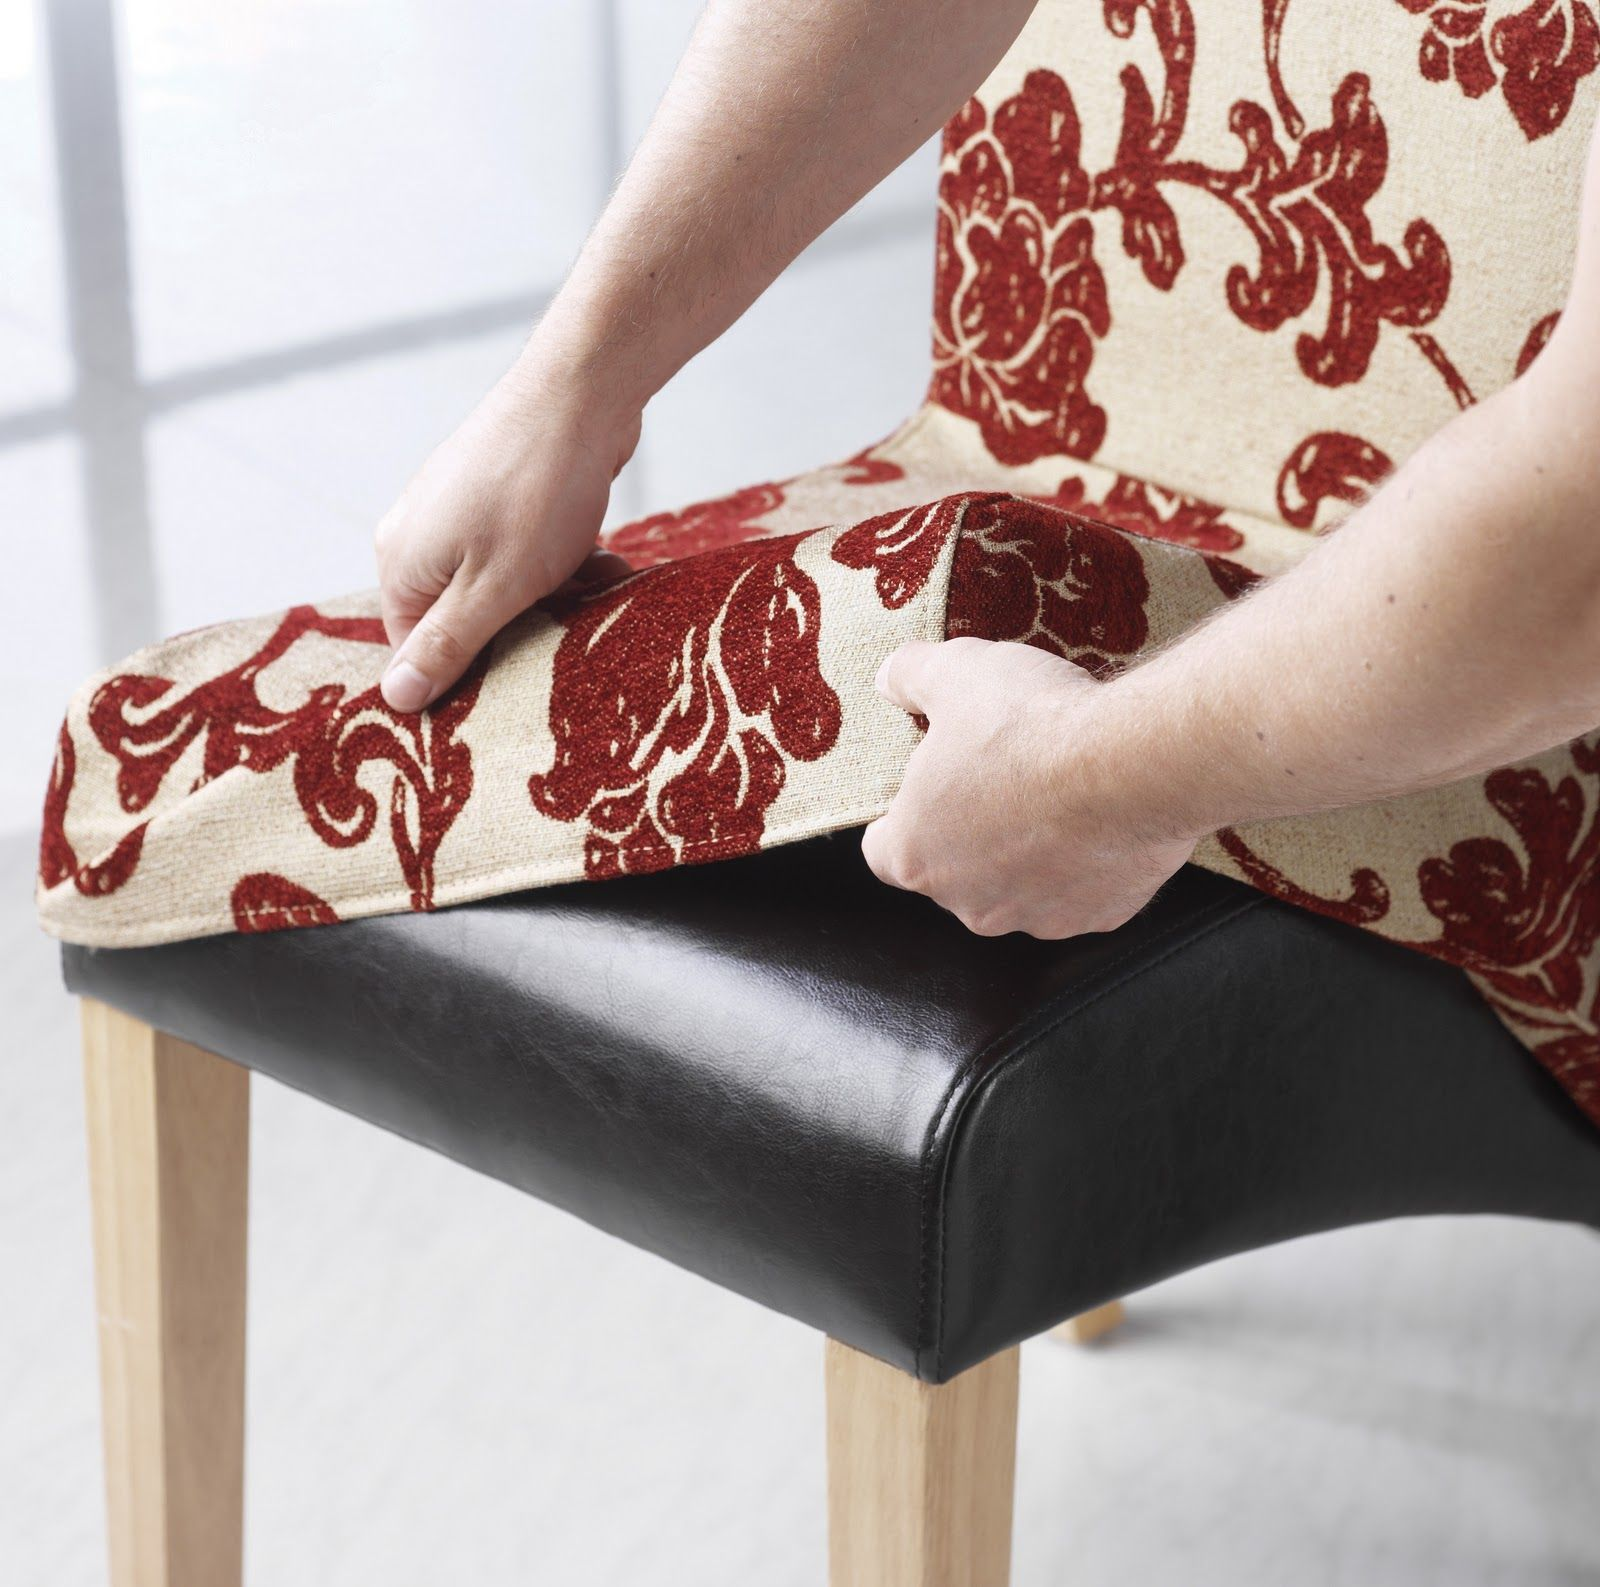 DIY How to make a Slip Cover for a Chair